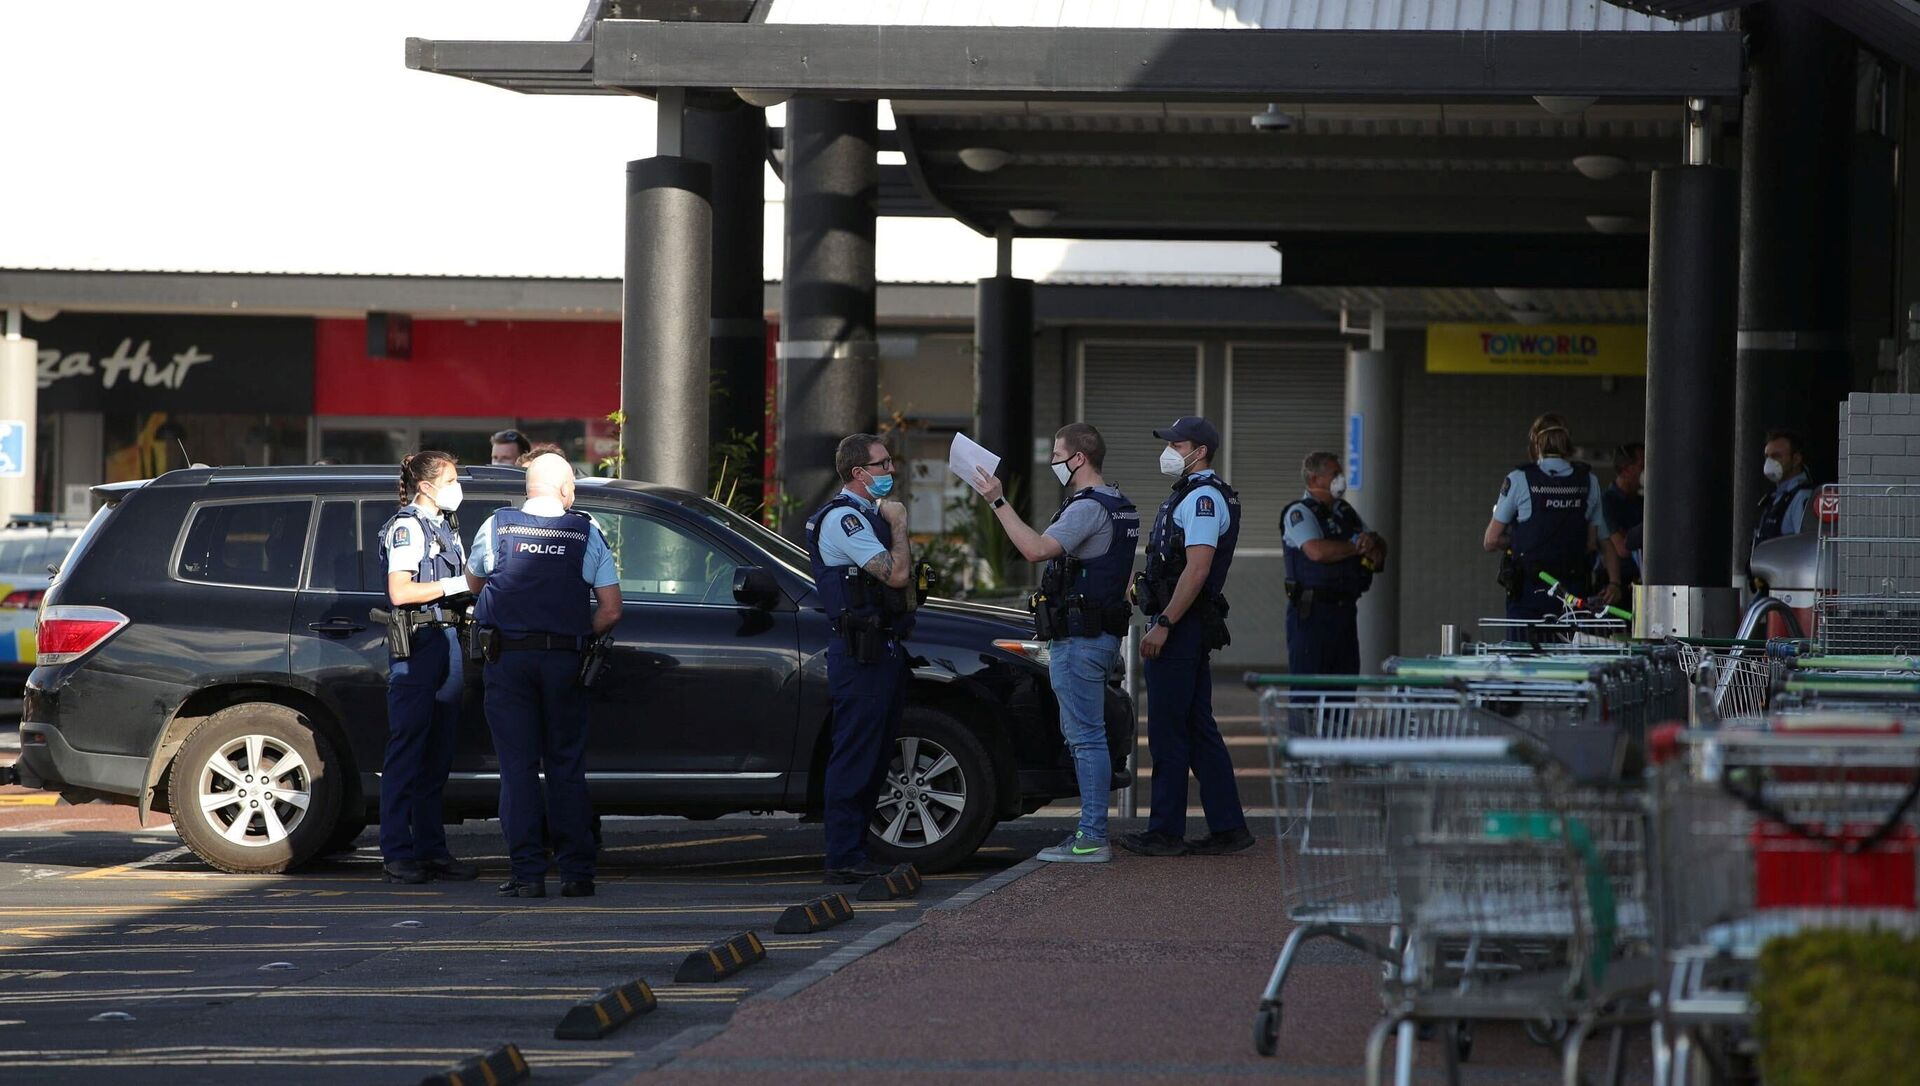 Police respond to the scene of an attack carried out by a man shot dead by police after he injured multiple people at a shopping mall in Auckland, New Zealand, 3 September 2021. - Sputnik International, 1920, 03.09.2021